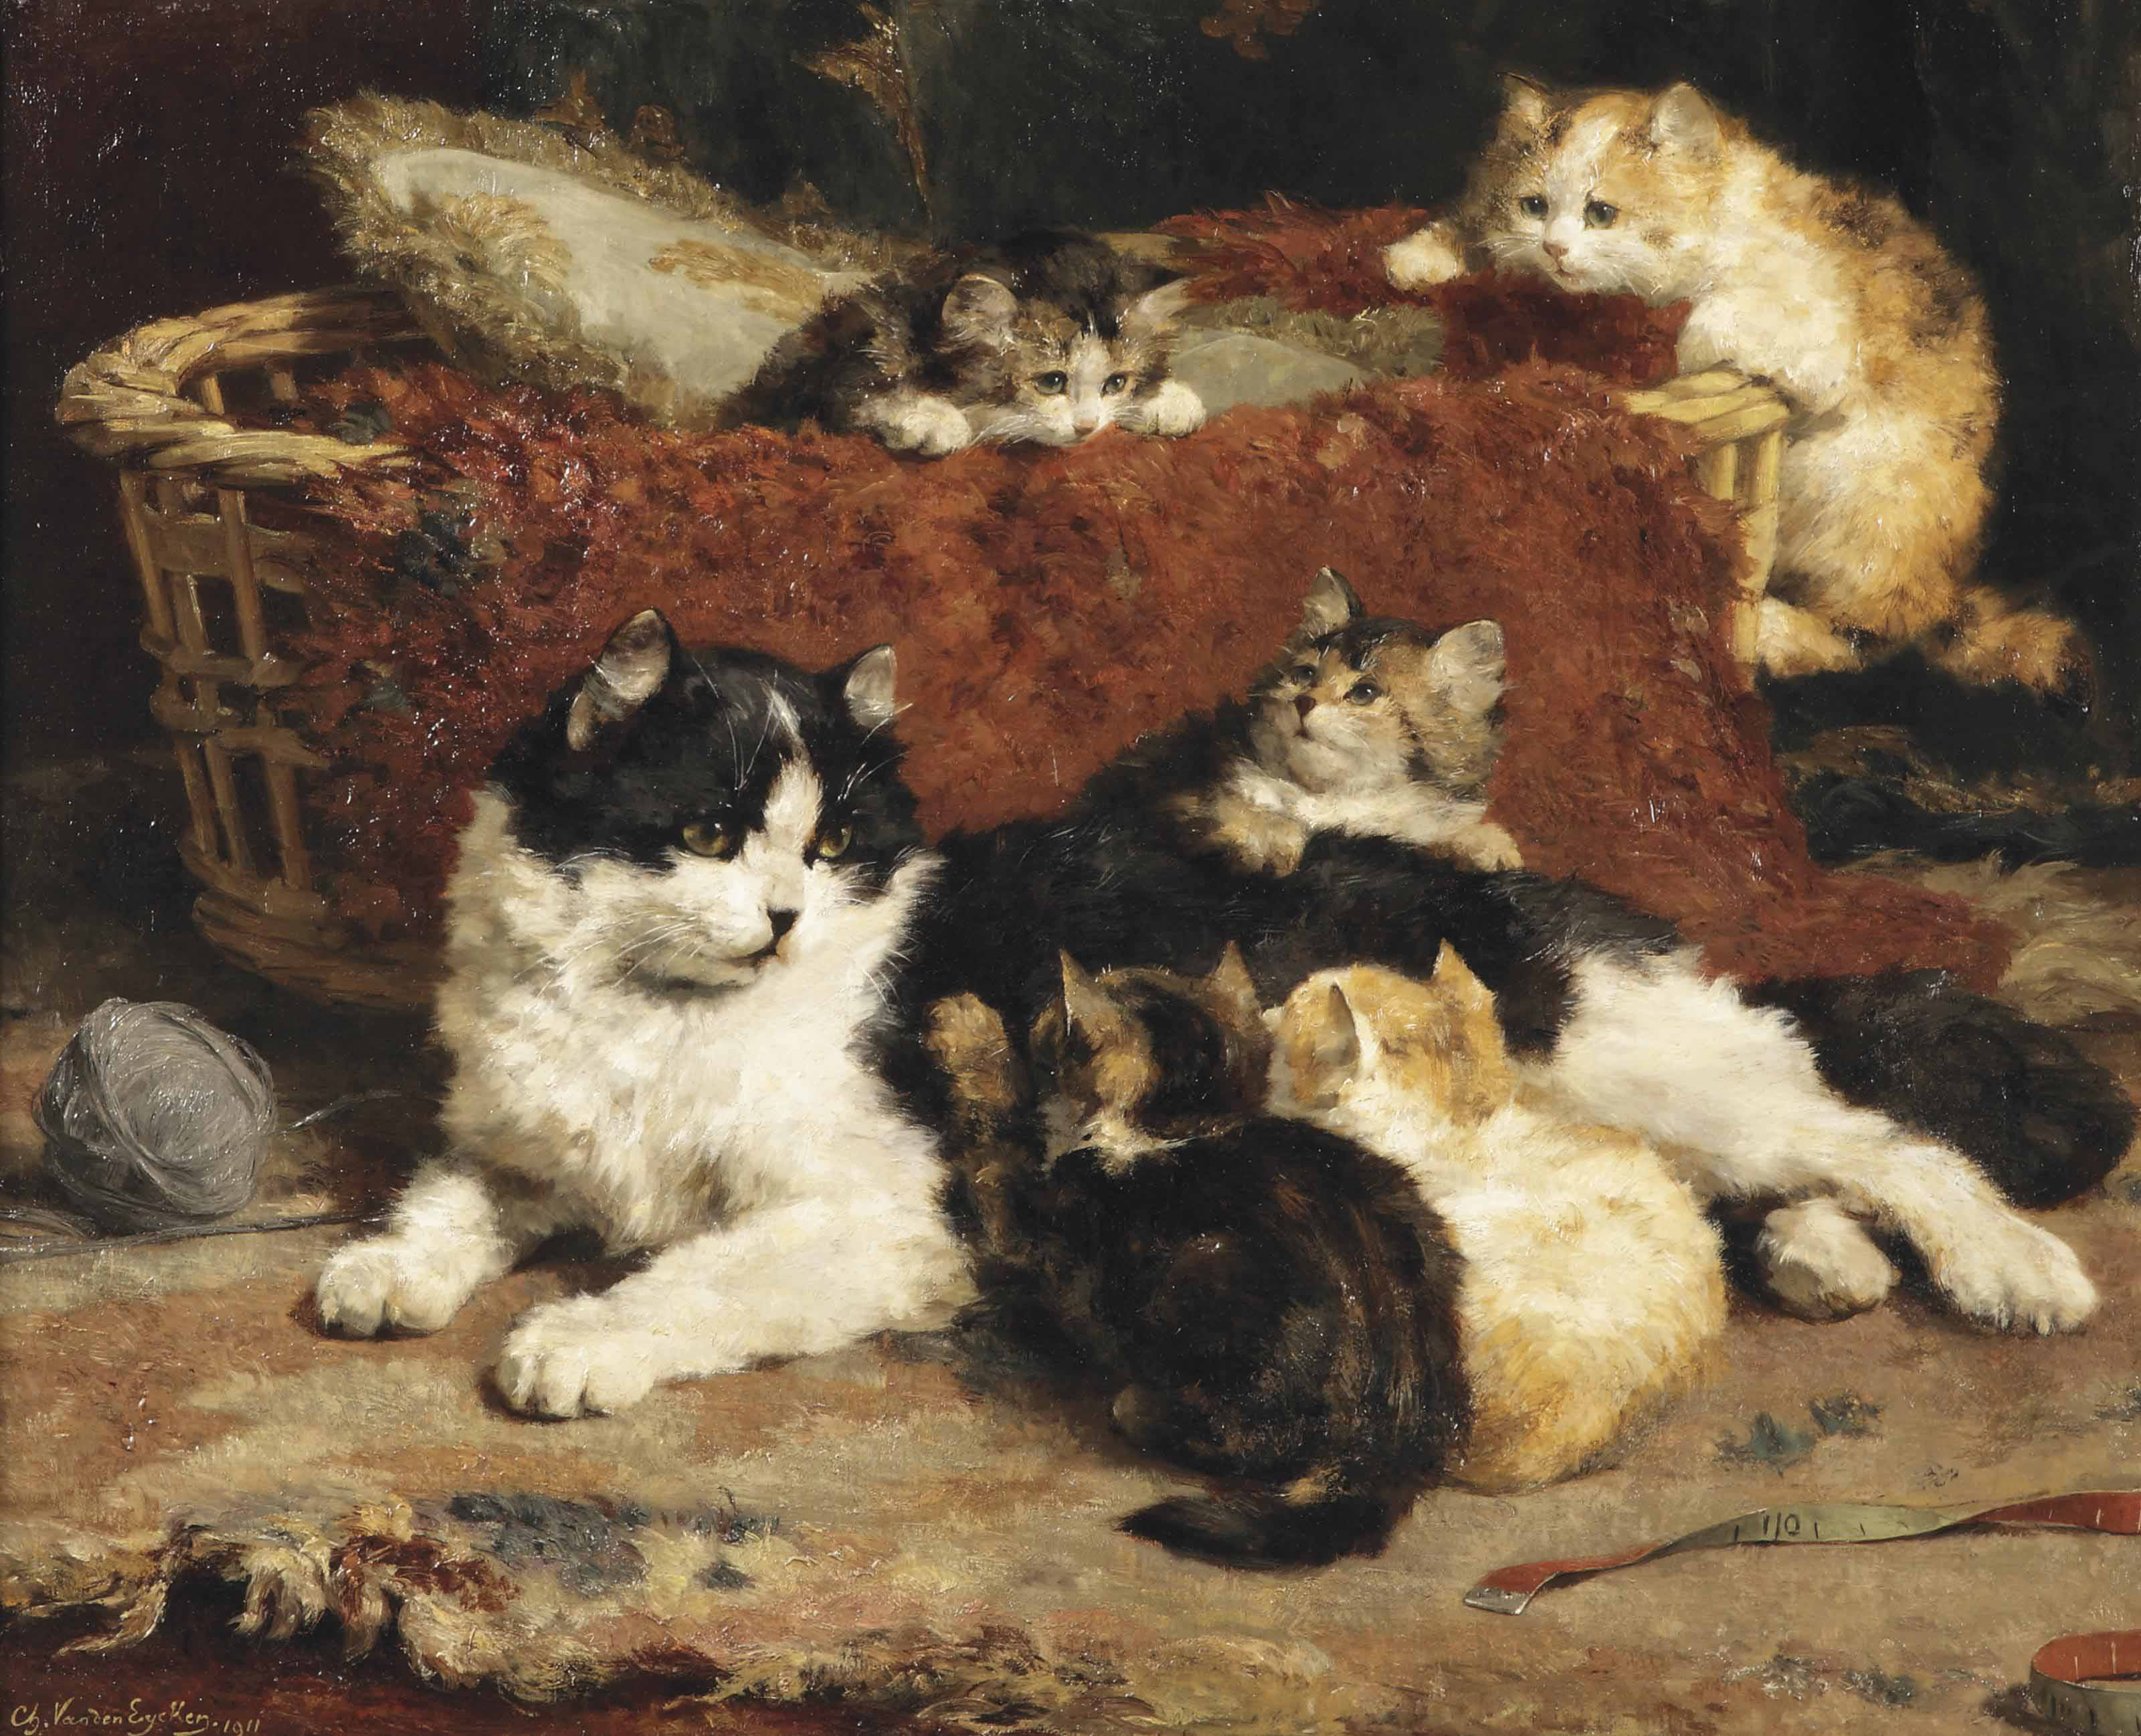 'Bonne Mere'; a cat and her kittens